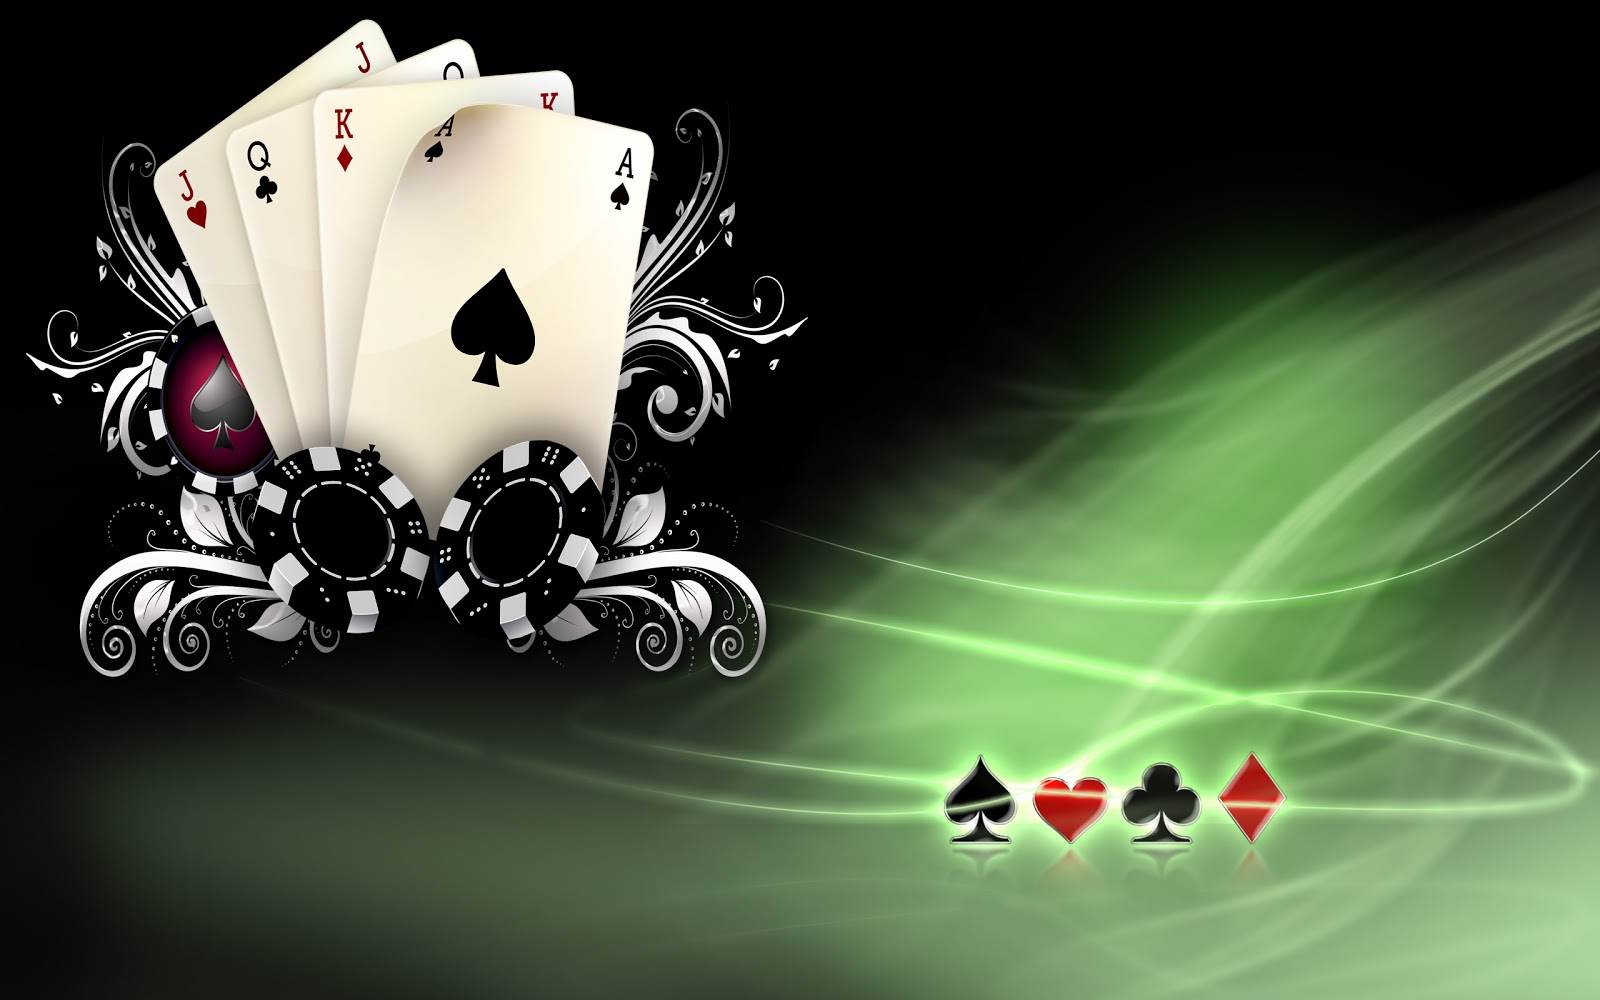 21 card rummy game download